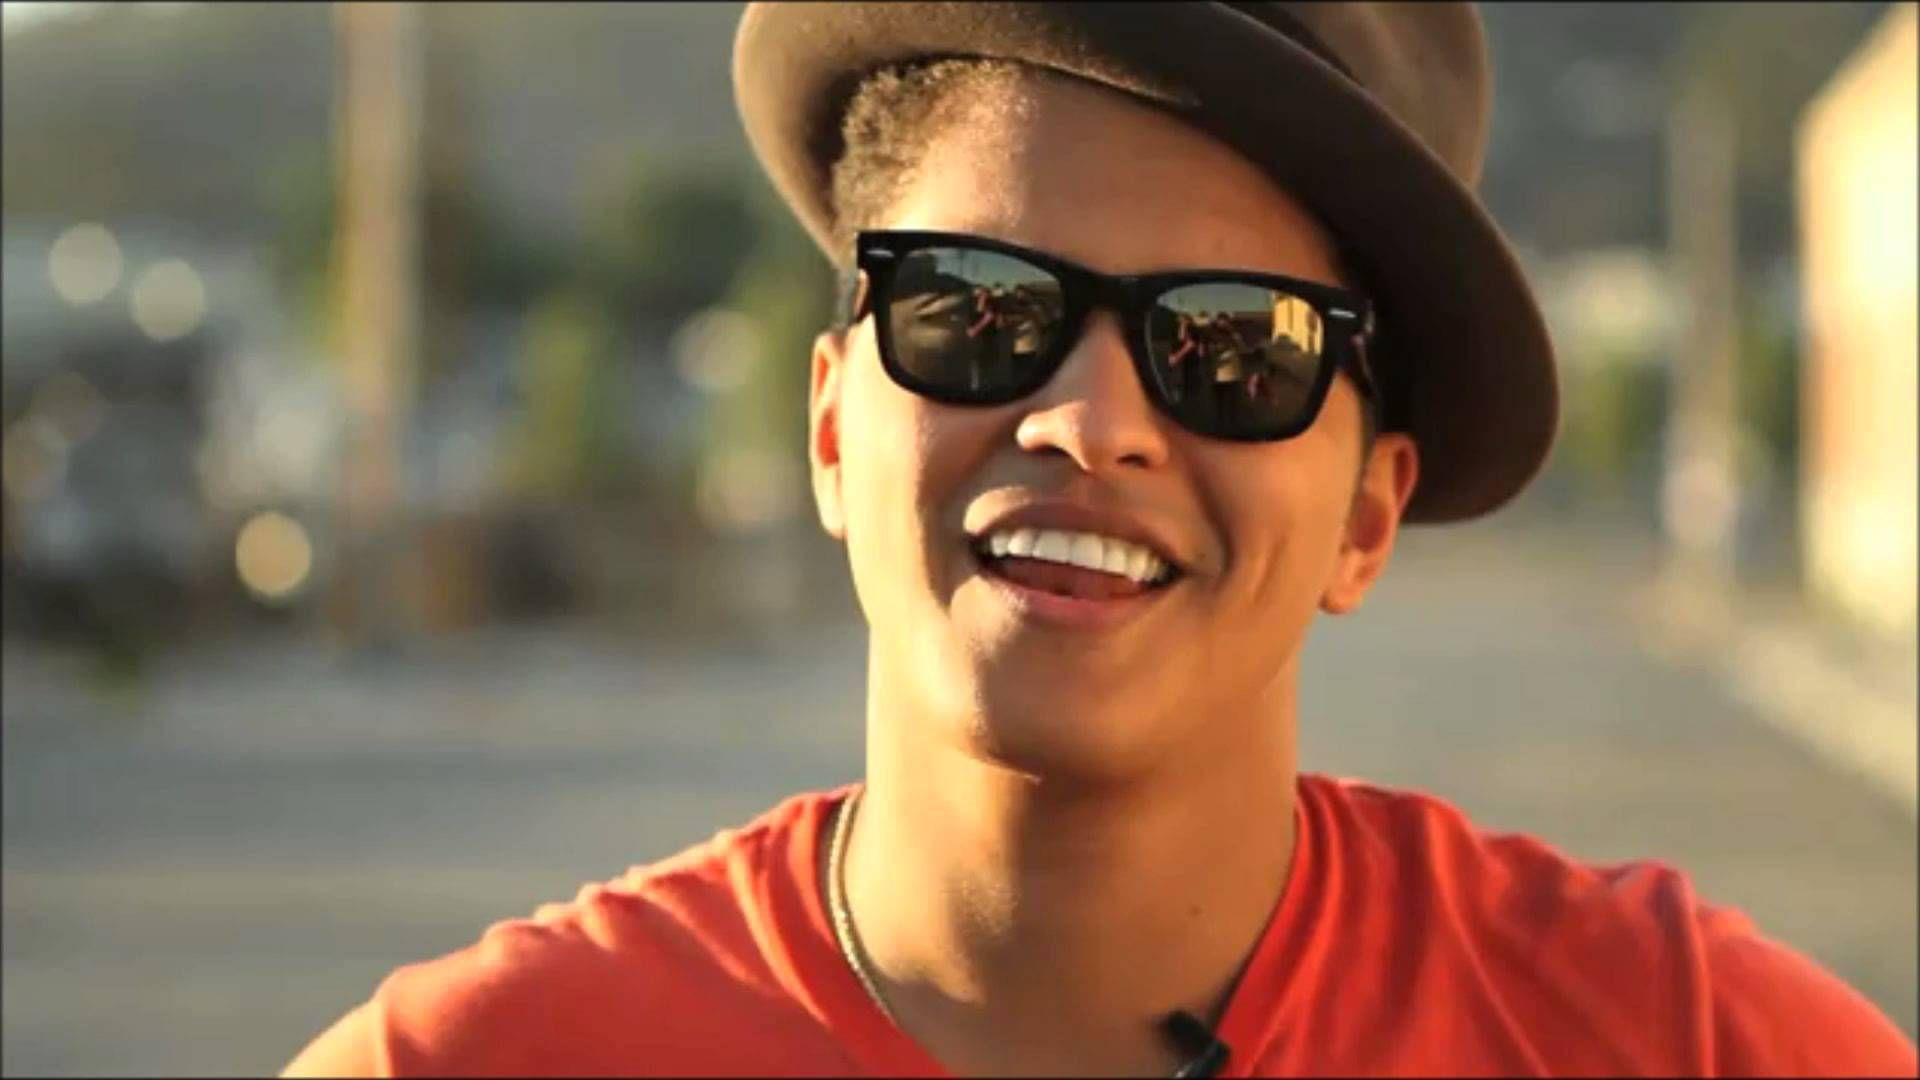 Bruno Mars Photo & image